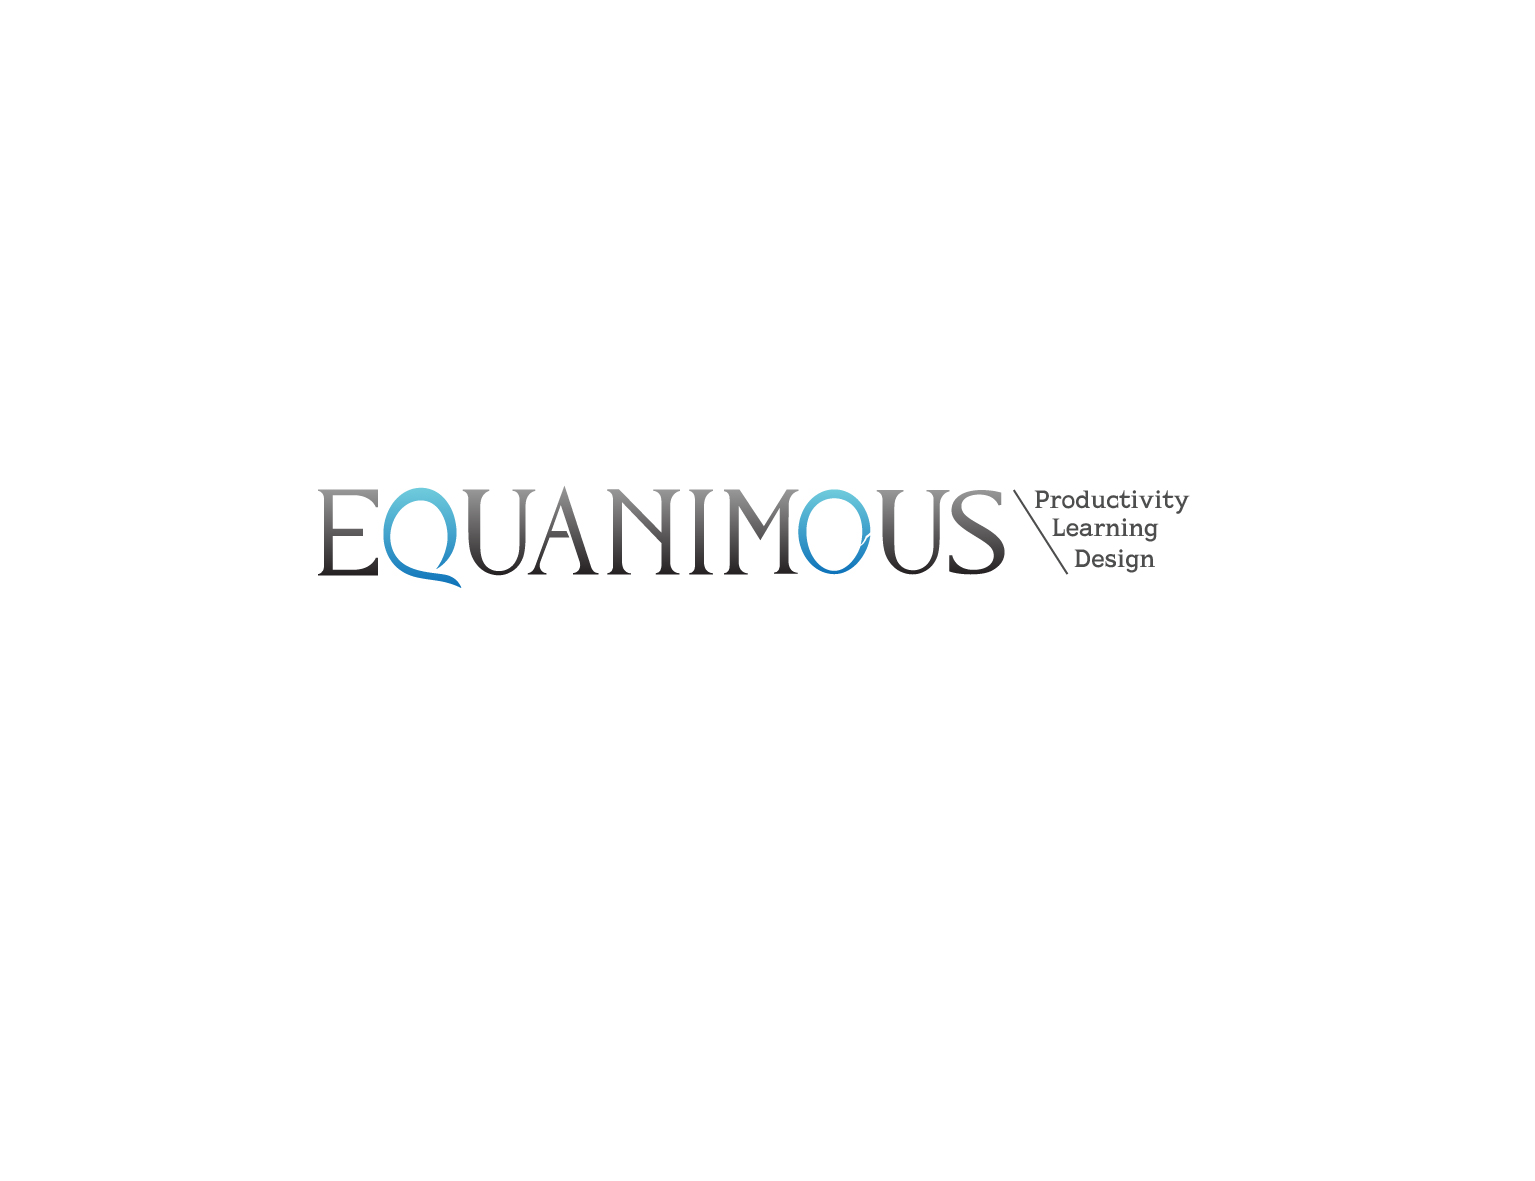 Logo Design by 3draw - Entry No. 414 in the Logo Design Contest Logo Design : EQUANIMOUS : Productivity | Learning | Design.